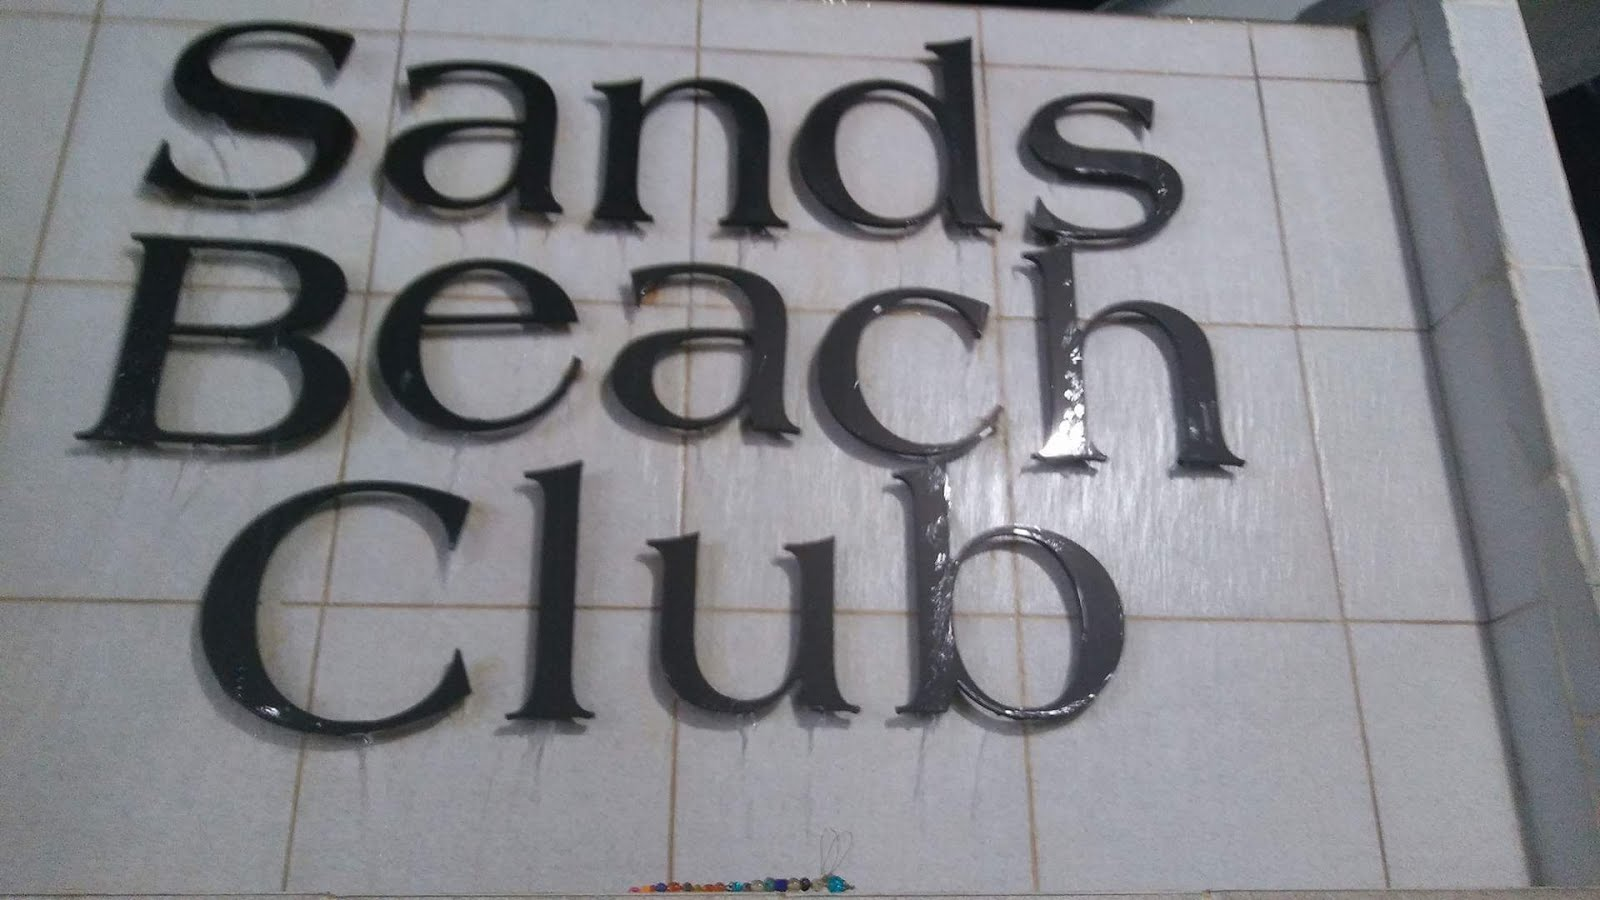 Sands Beach Club ... Tommy's last trip